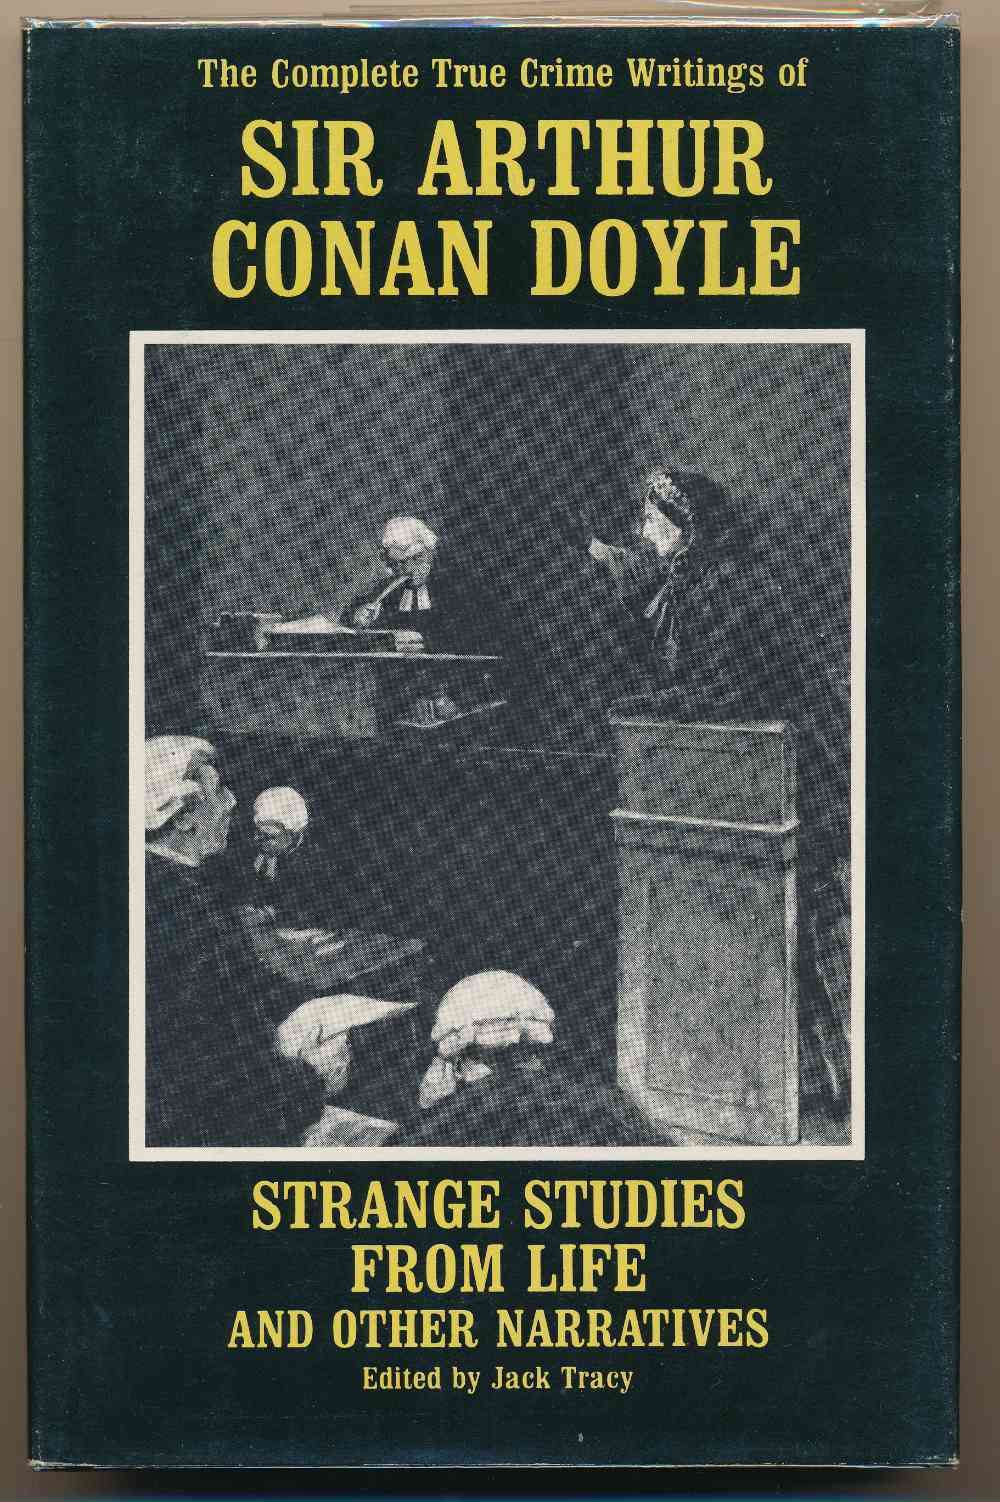 Strange studies from life and other narratives : the complete true crime writings of Sir Arthur Conan Doyle.